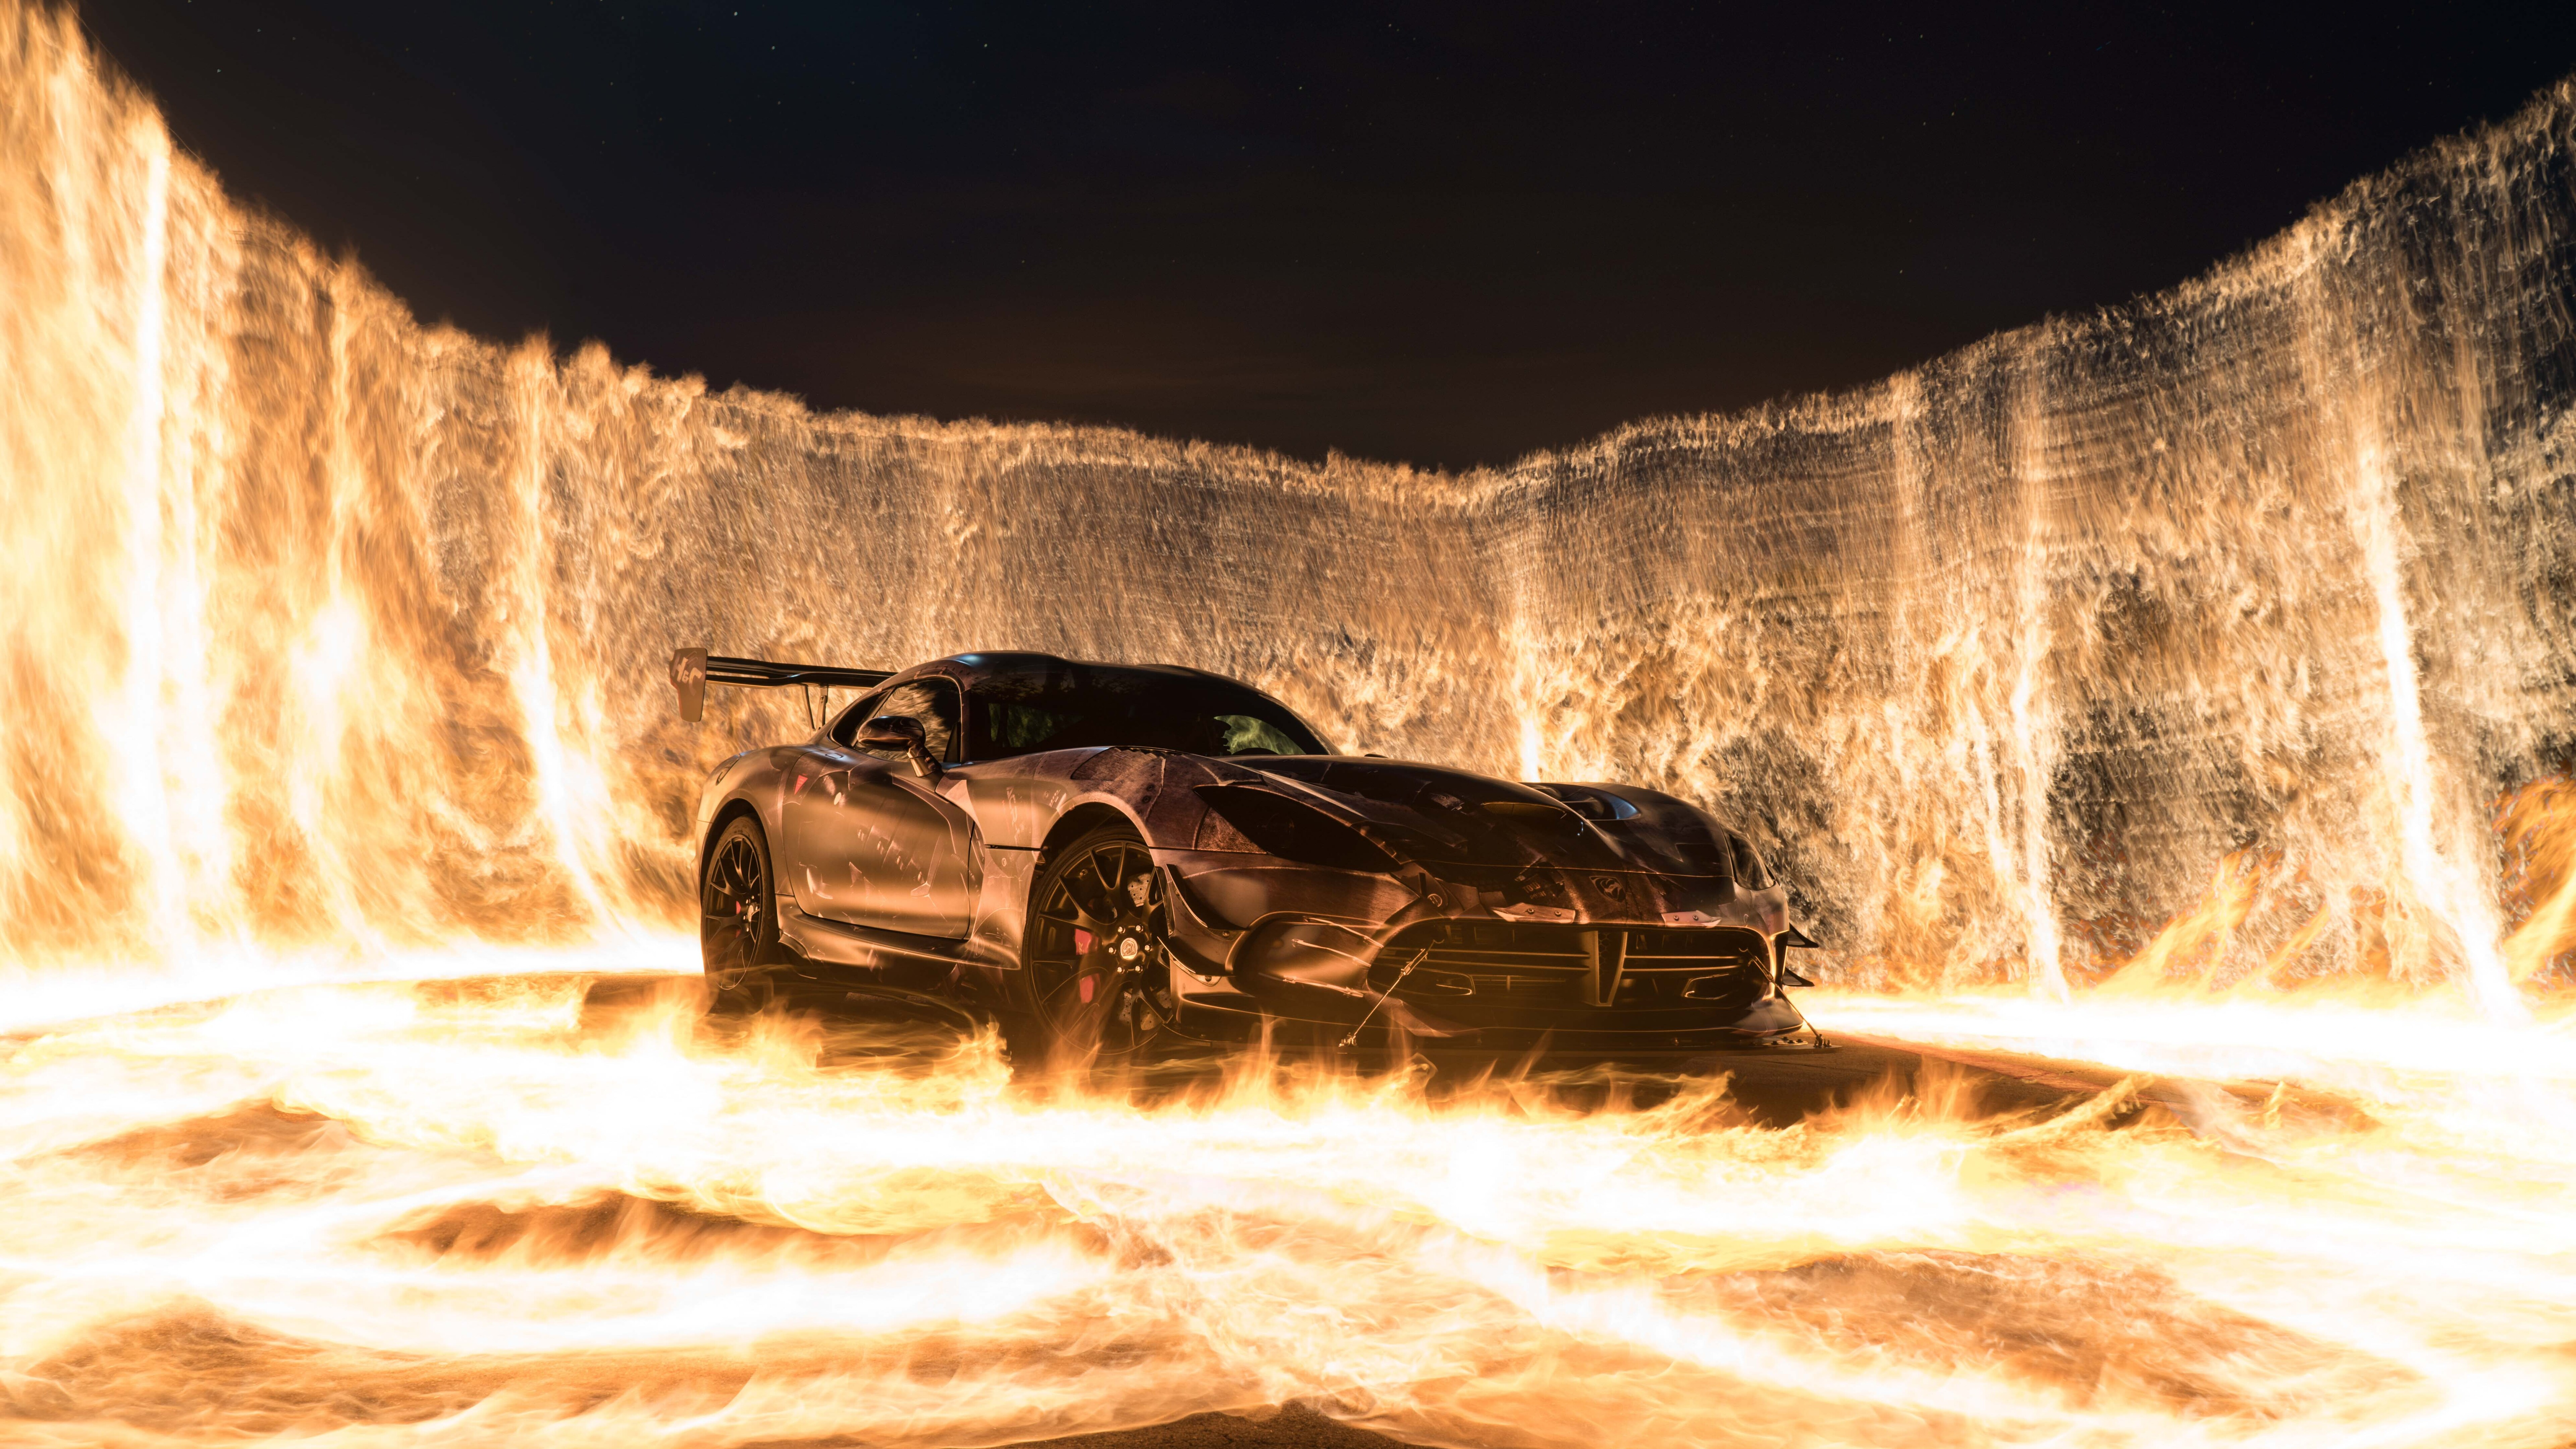 7680x4320 Sports Car On Fire 8k Hd 4k Wallpapers Images